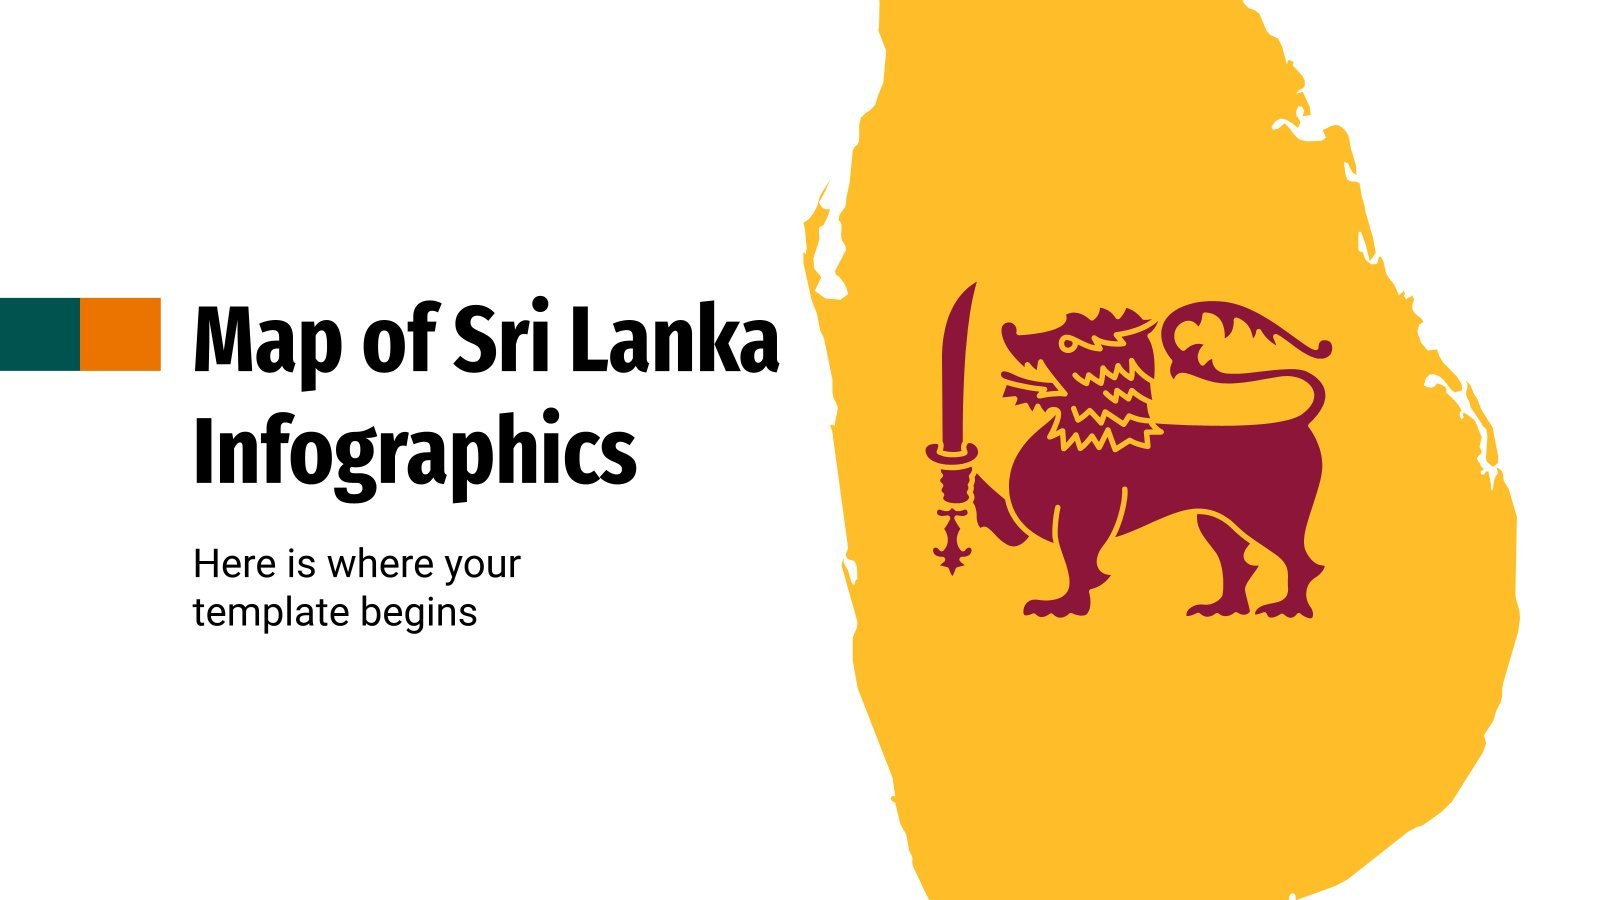 Map of Sri Lanka Infographics presentation template